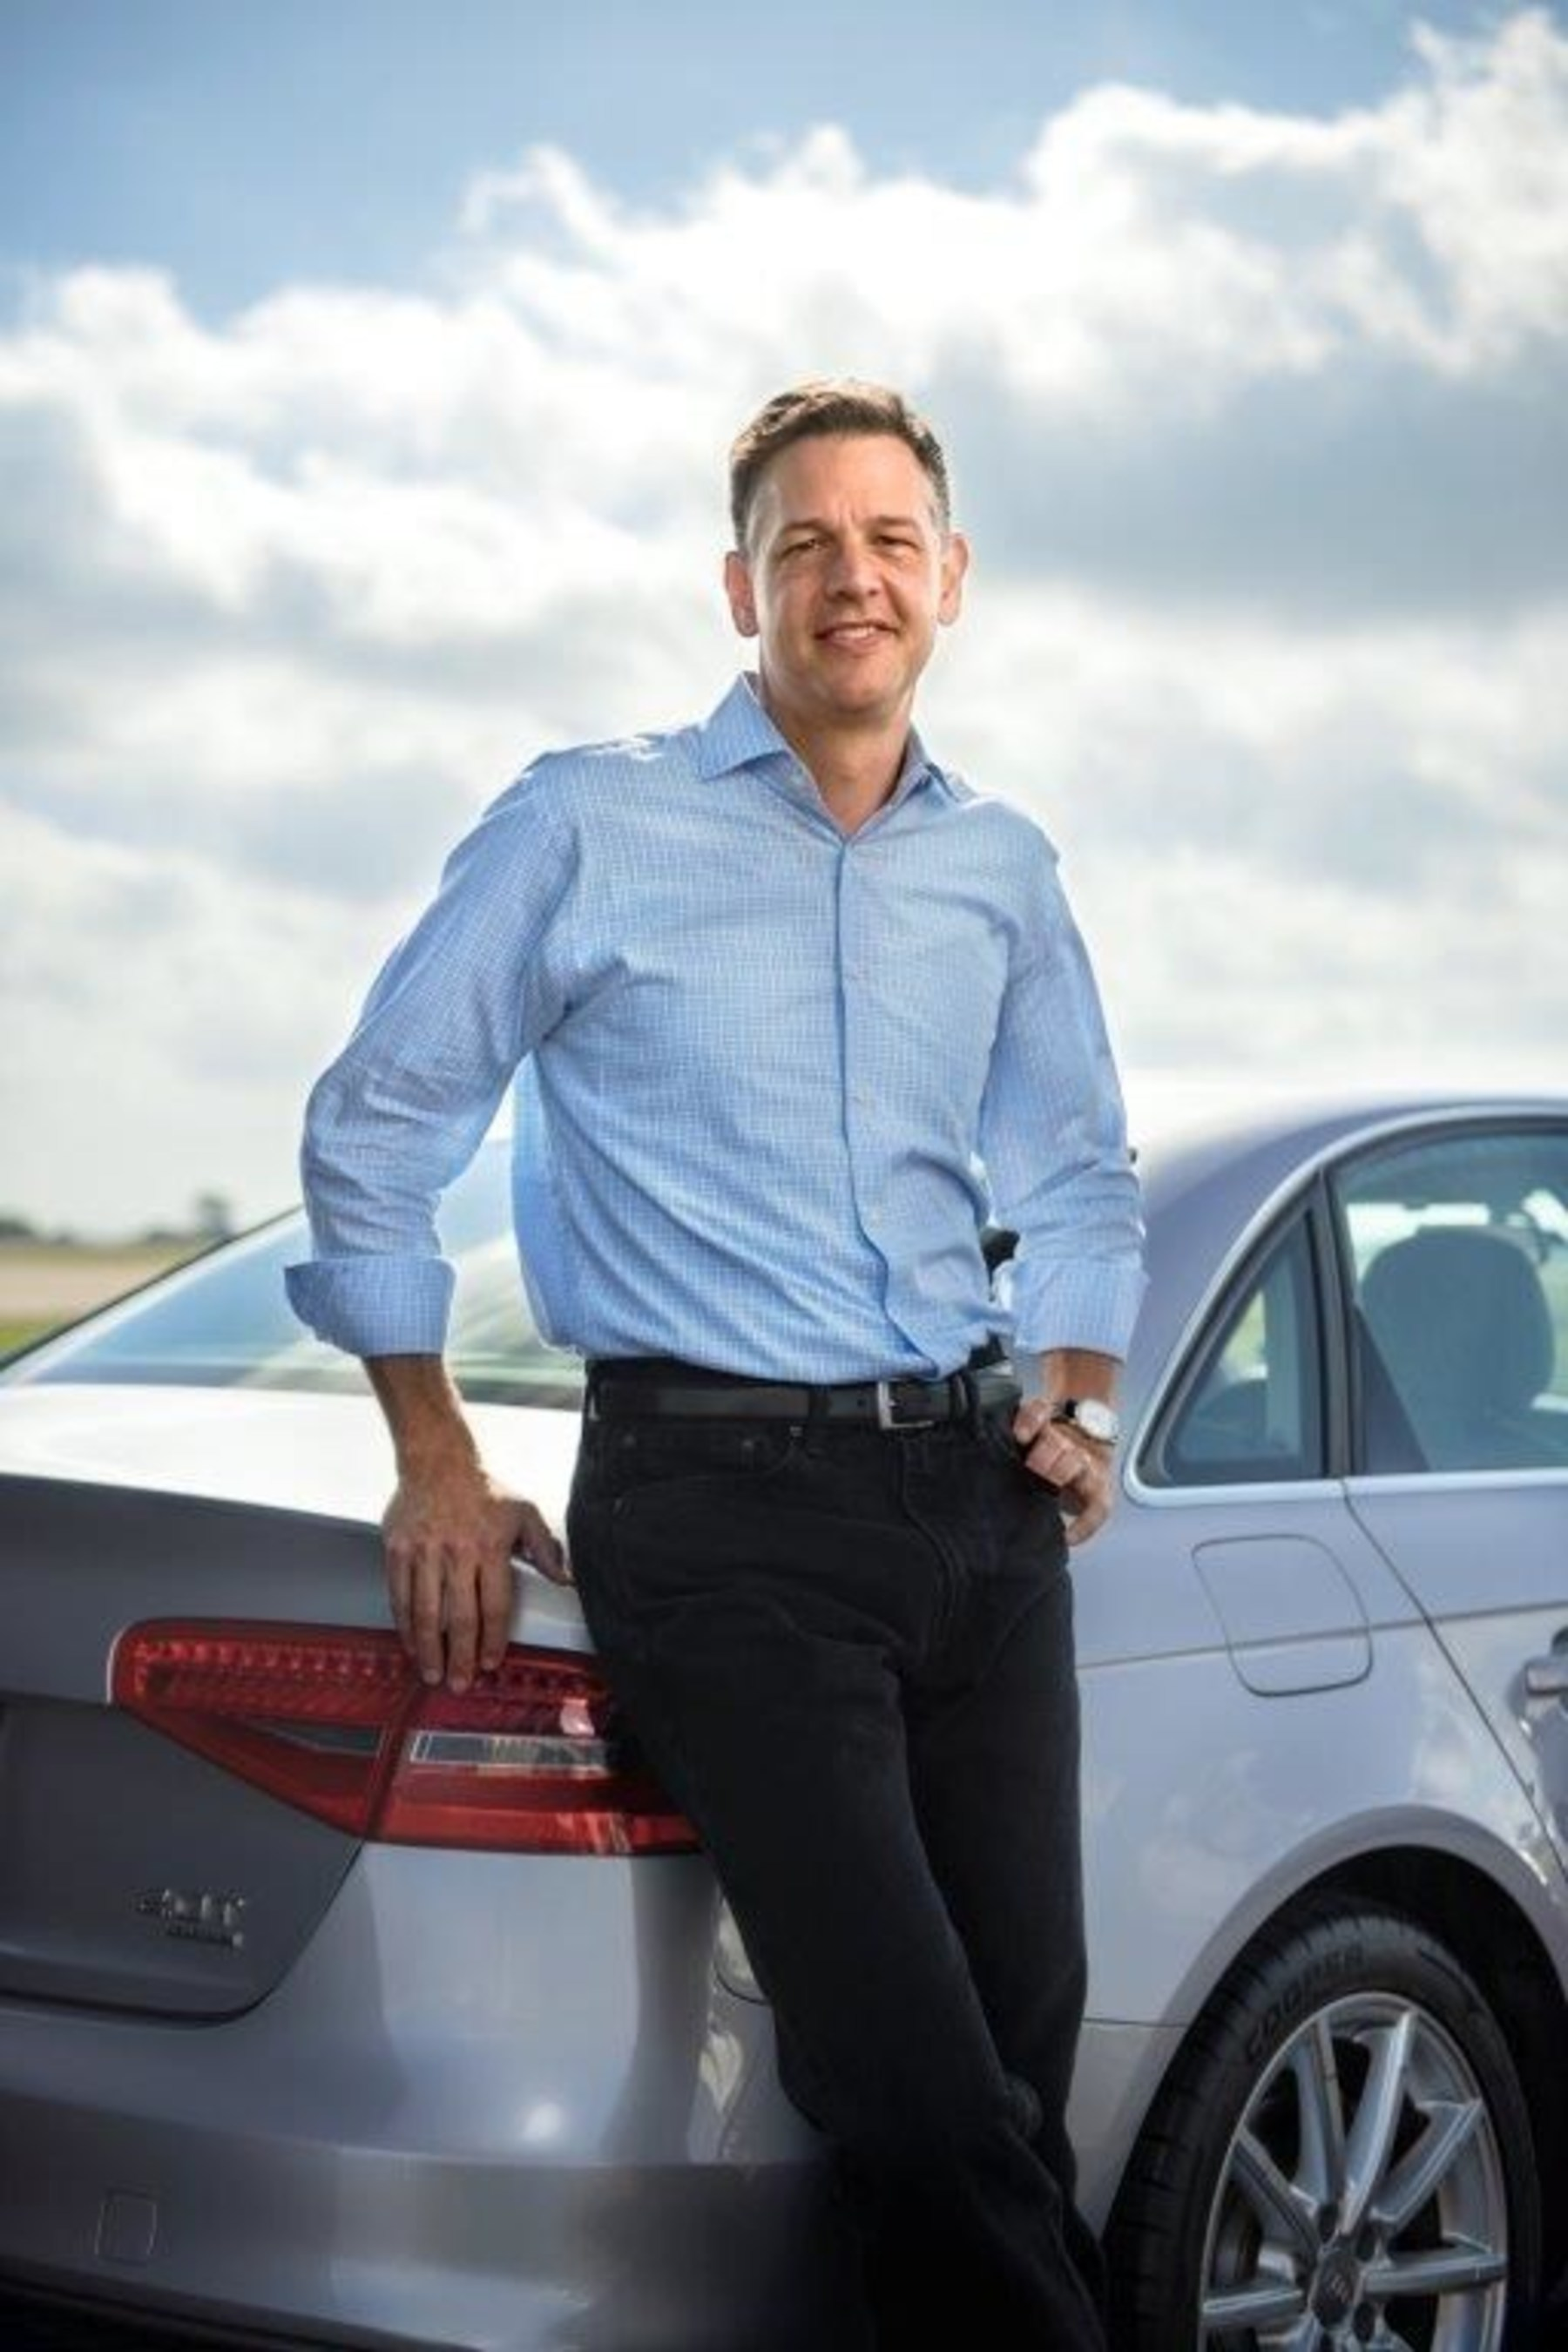 Luke Schneider, CEO of Silvercar, has directed the company through its largest capital raise to date with a $28 million Series C equity issuance led by Audi